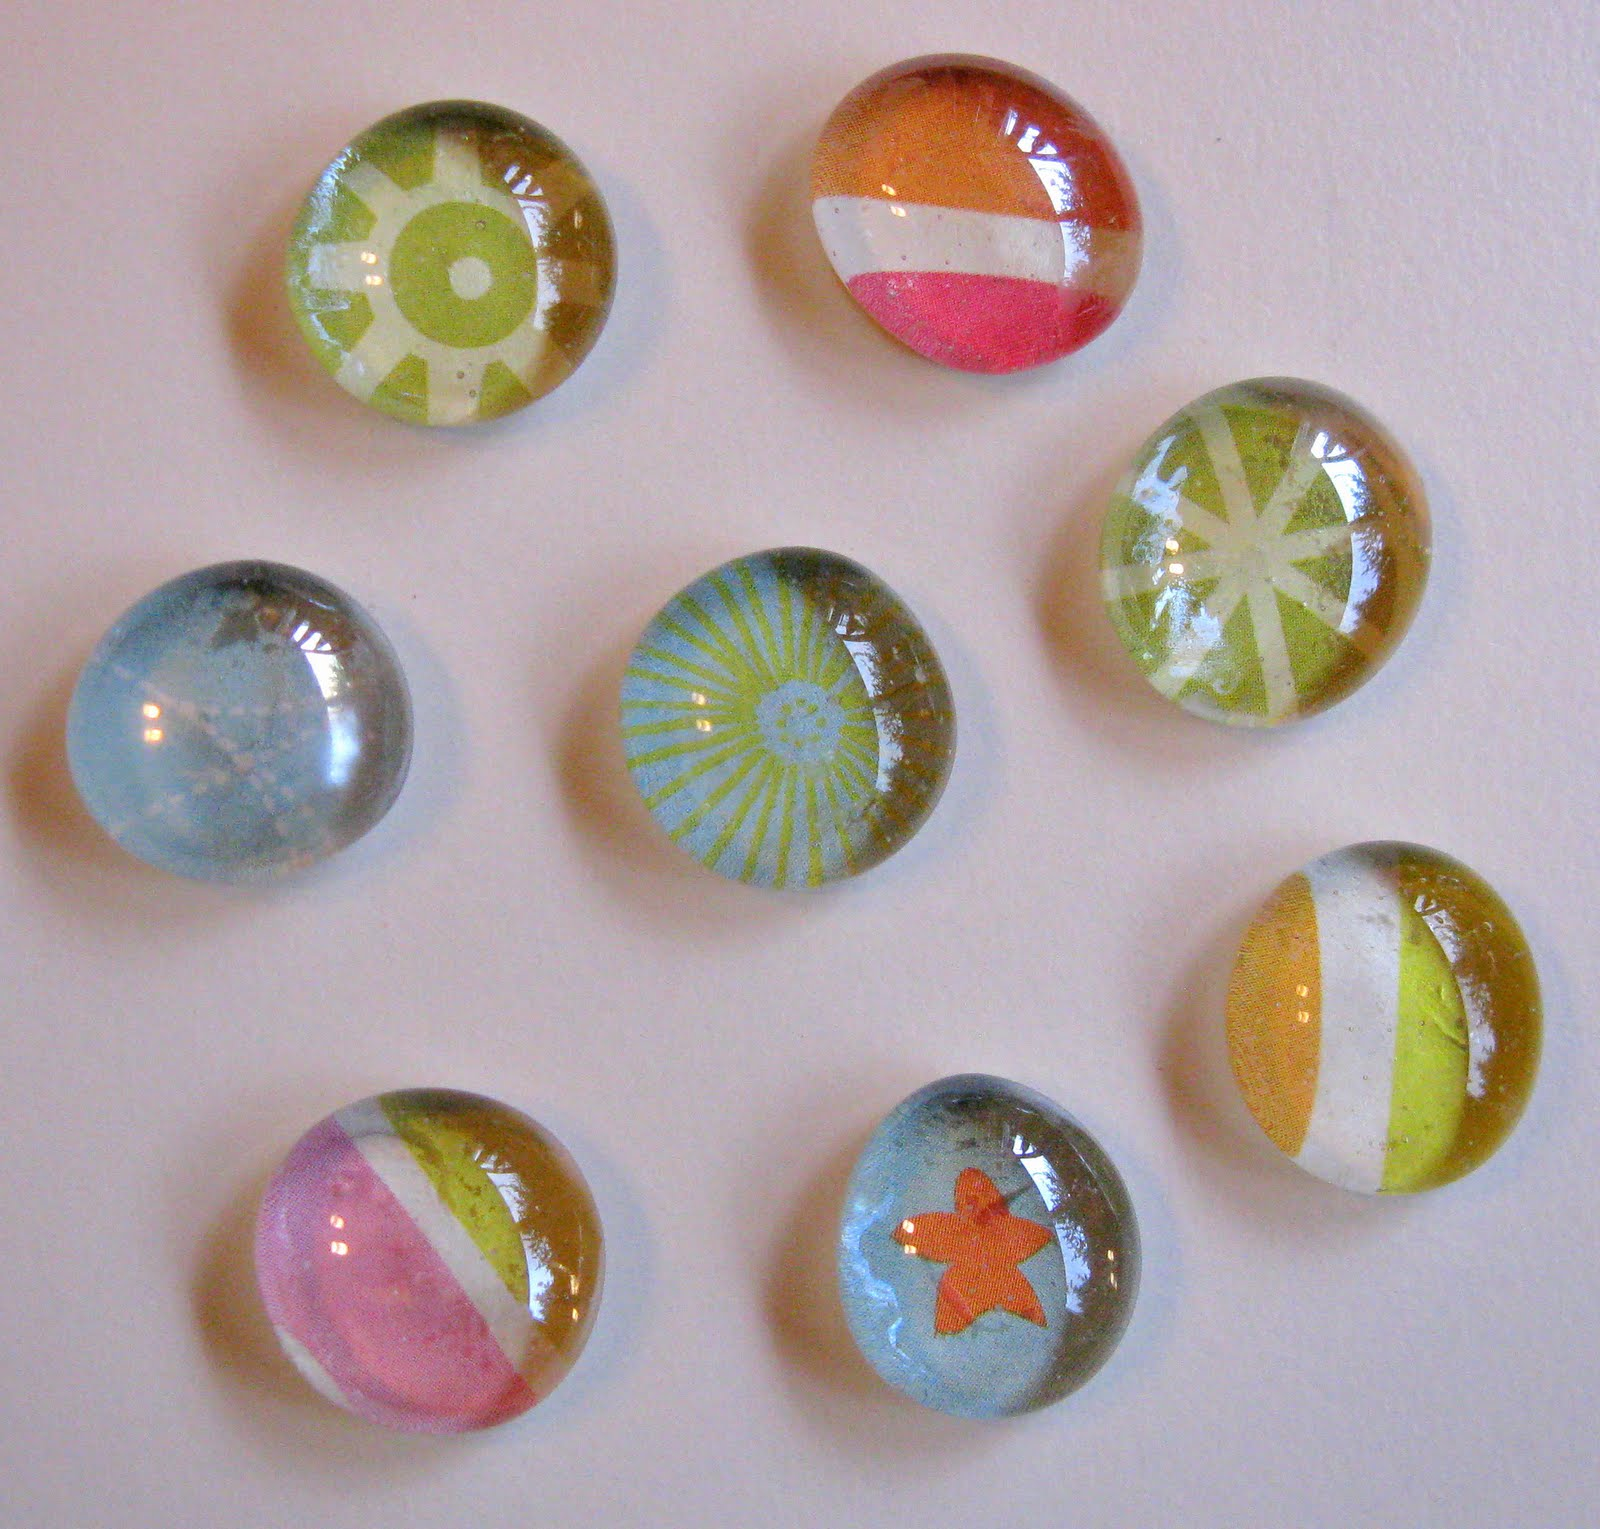 Crafting sick day crafts glass marble magnets for Small magnets for crafts